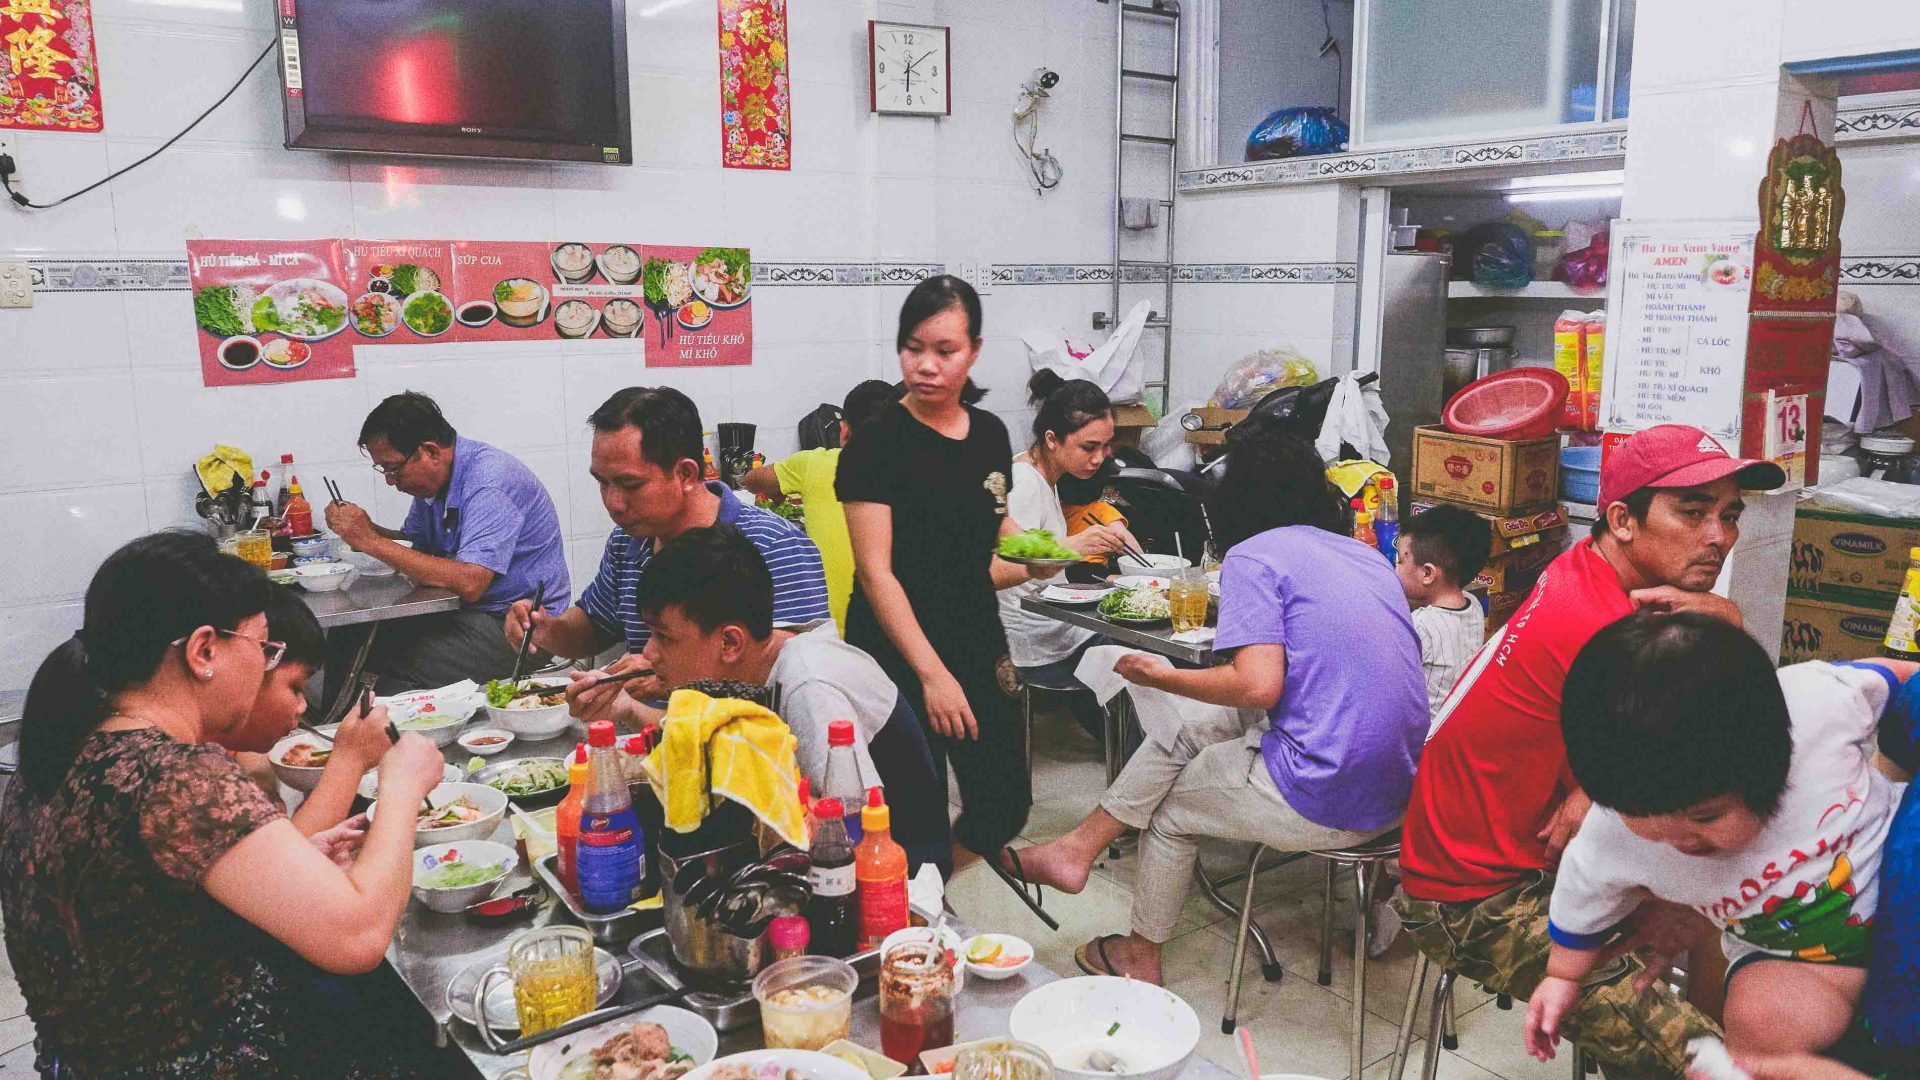 Ho Chi Minh street food: Vo Thi Ngoc Nhung's food cart, Amen is one of Ho Chi Minh City's oldest food stalls.